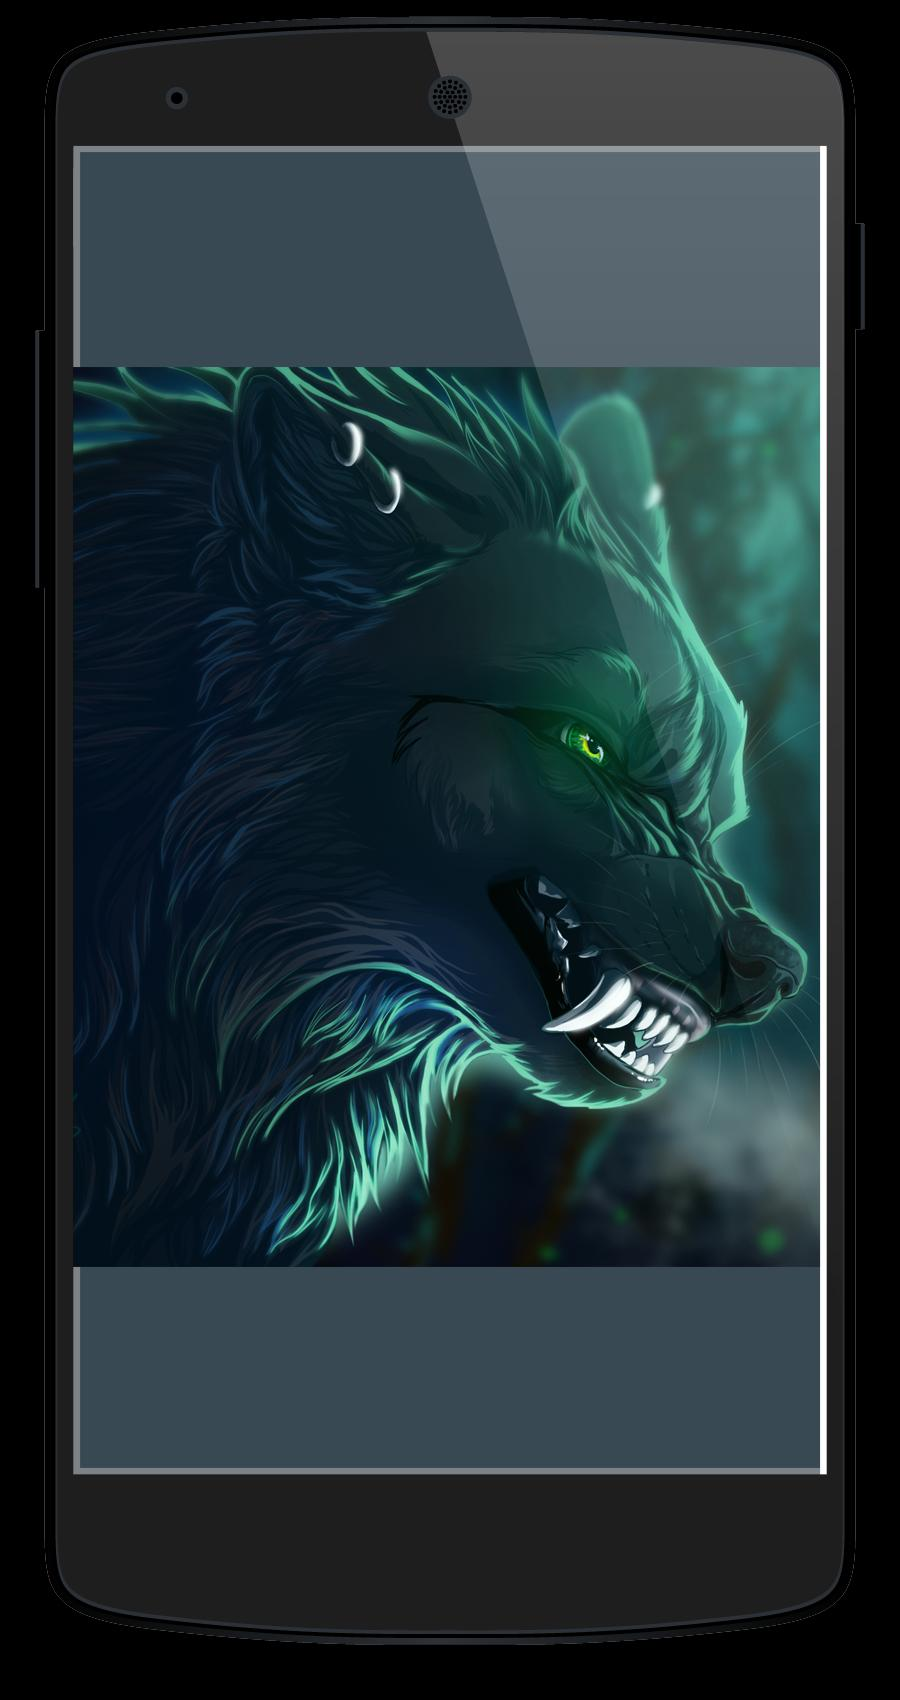 Anime Wolf Wallpapers For Android Apk Download